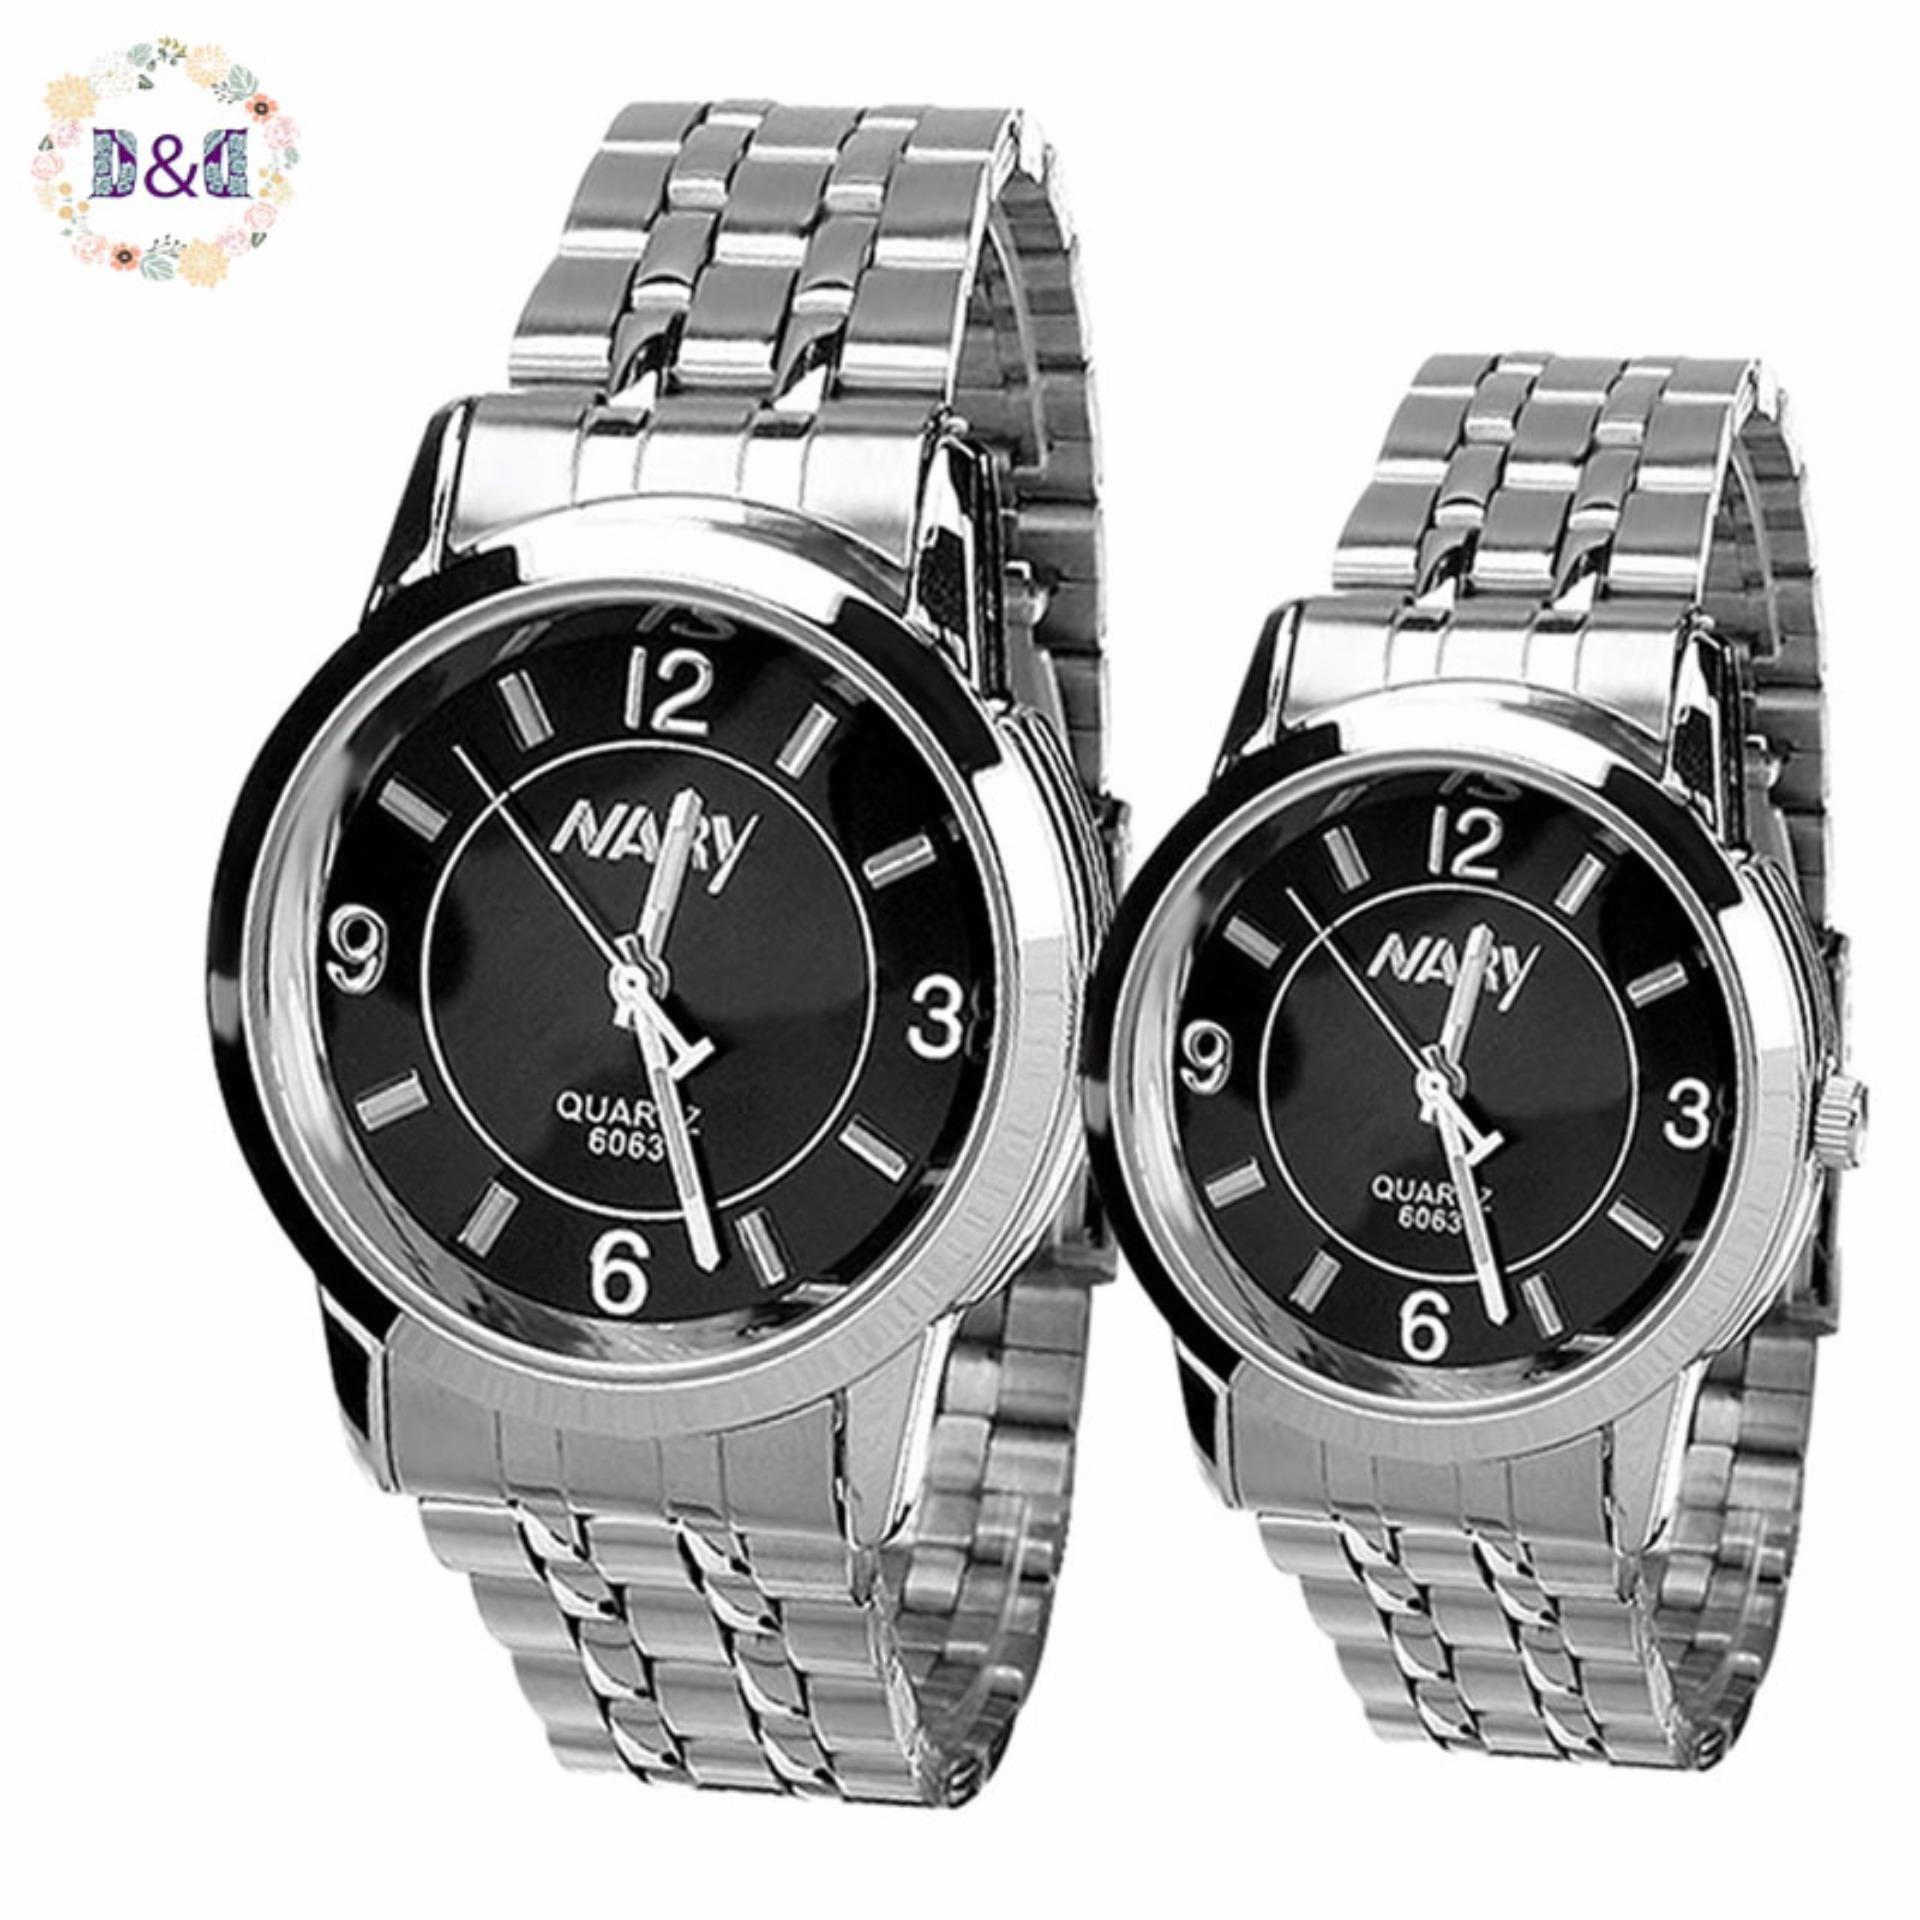 Home; Jewellery; Watches. NARY Lovers Black Stainless Steel Strap Watch 6063